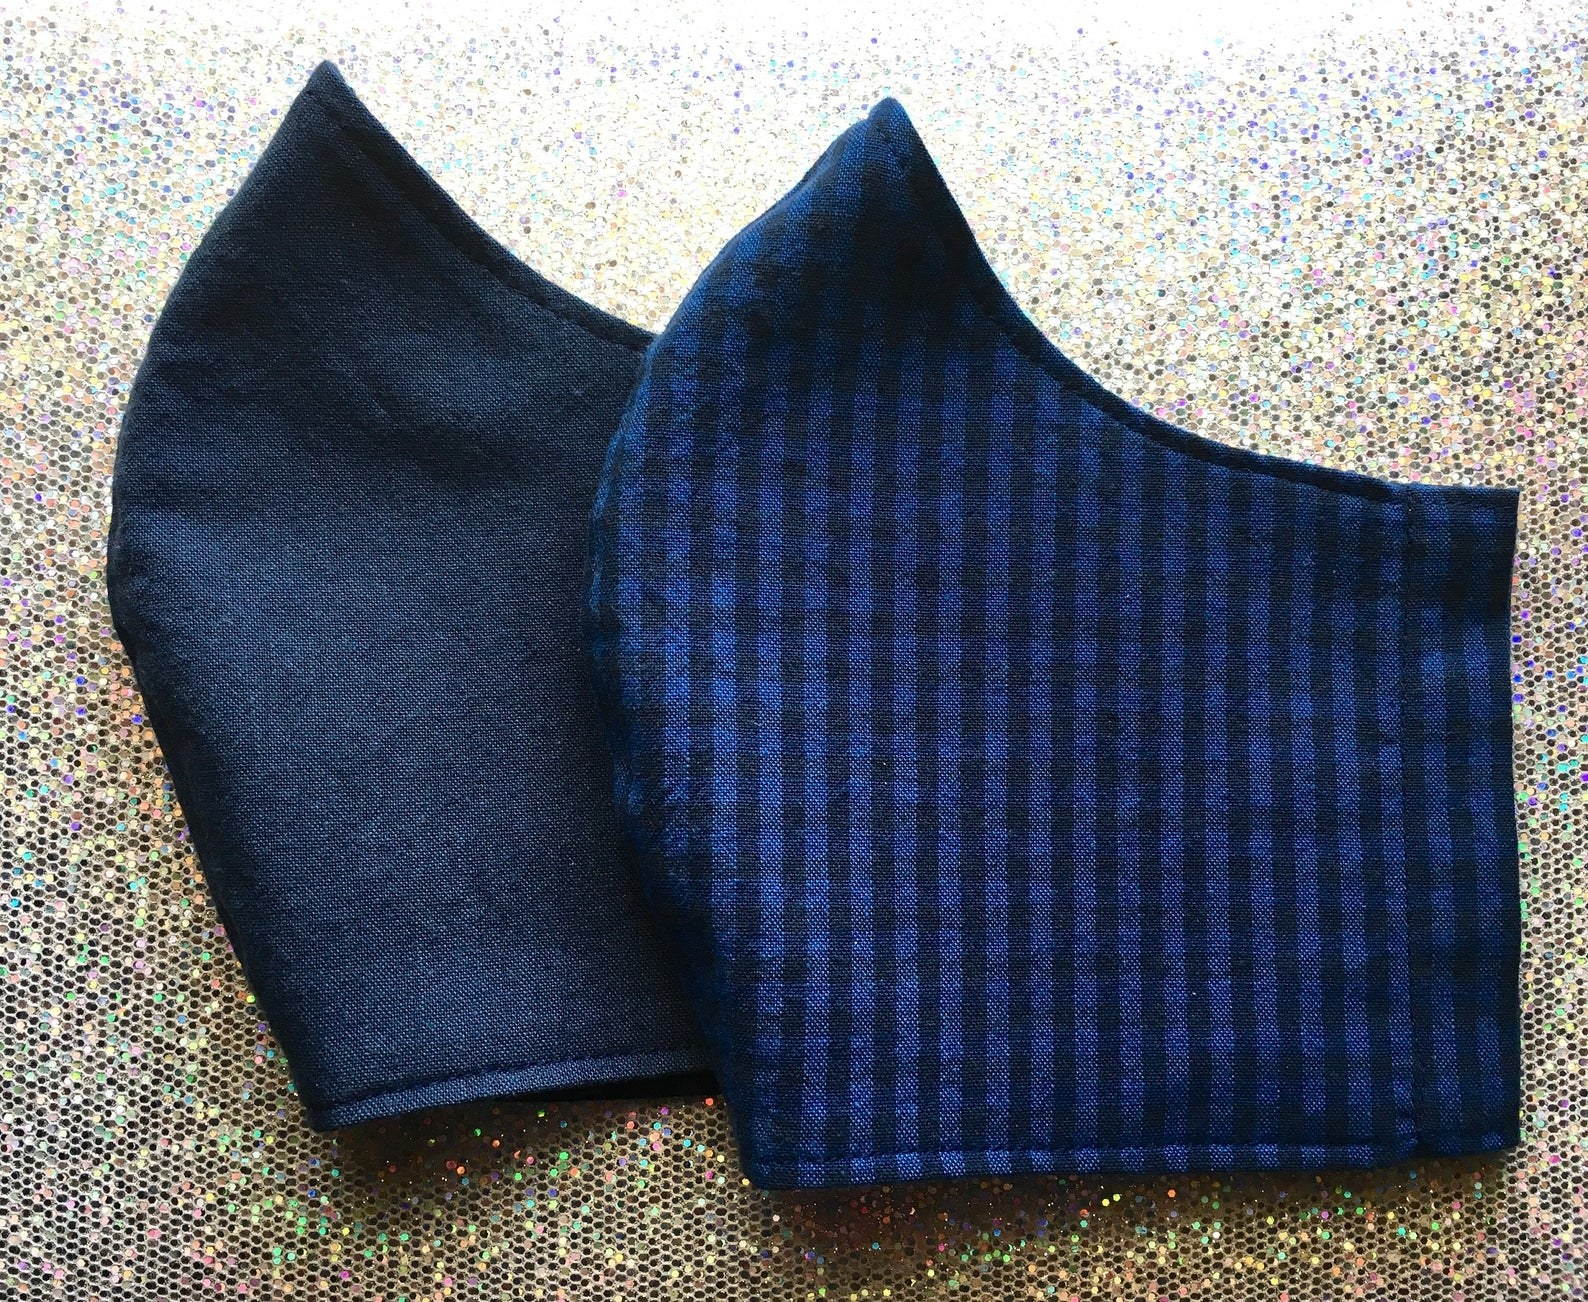 A navy blue face mask and a navy blue/black gingham face mask